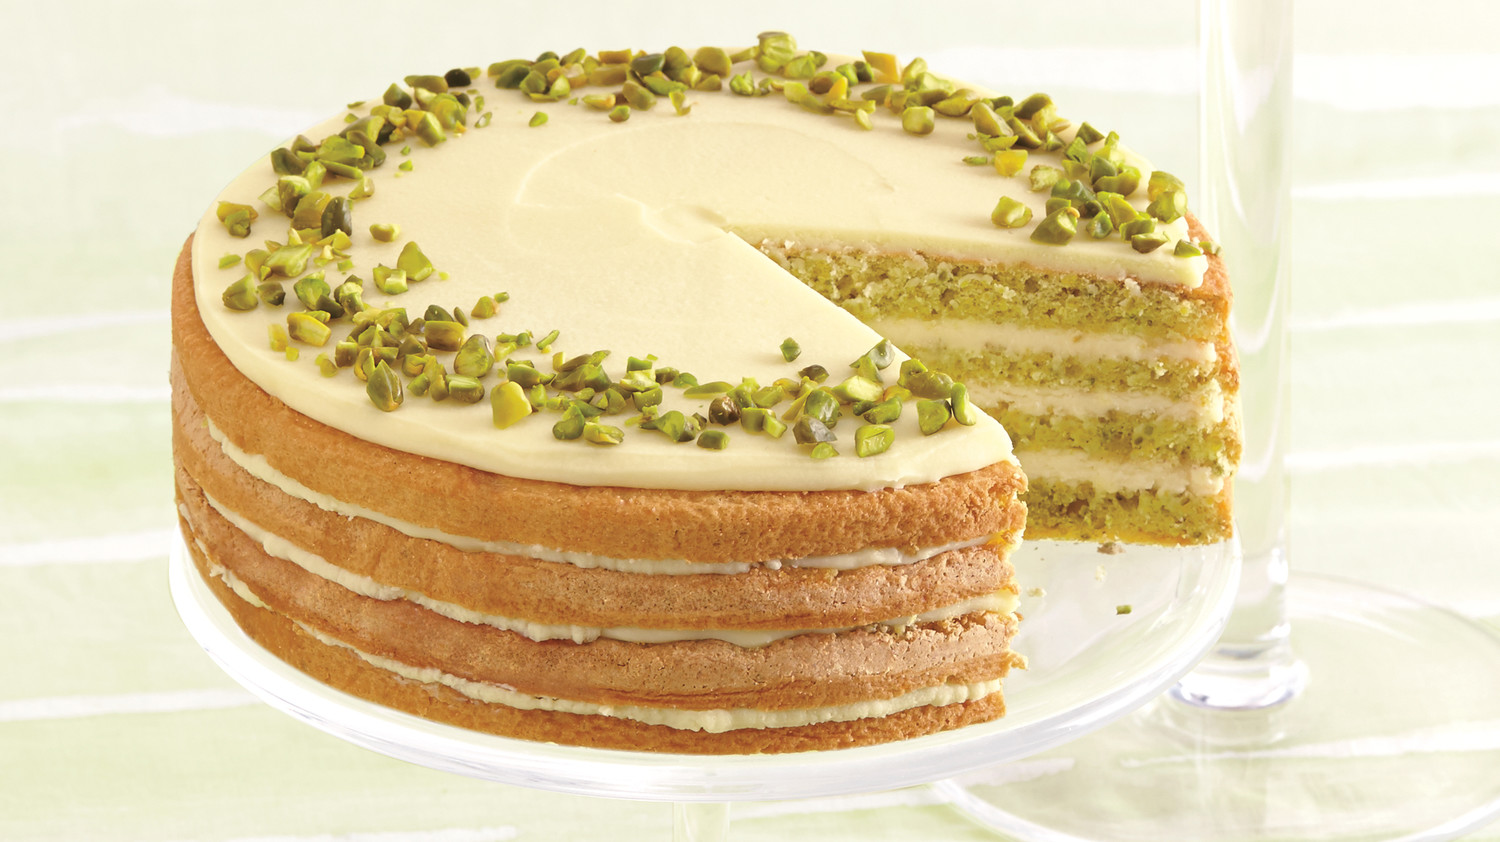 Sicilian Pistachio Cake With Lemon Syrup And White Chocolate Ganache